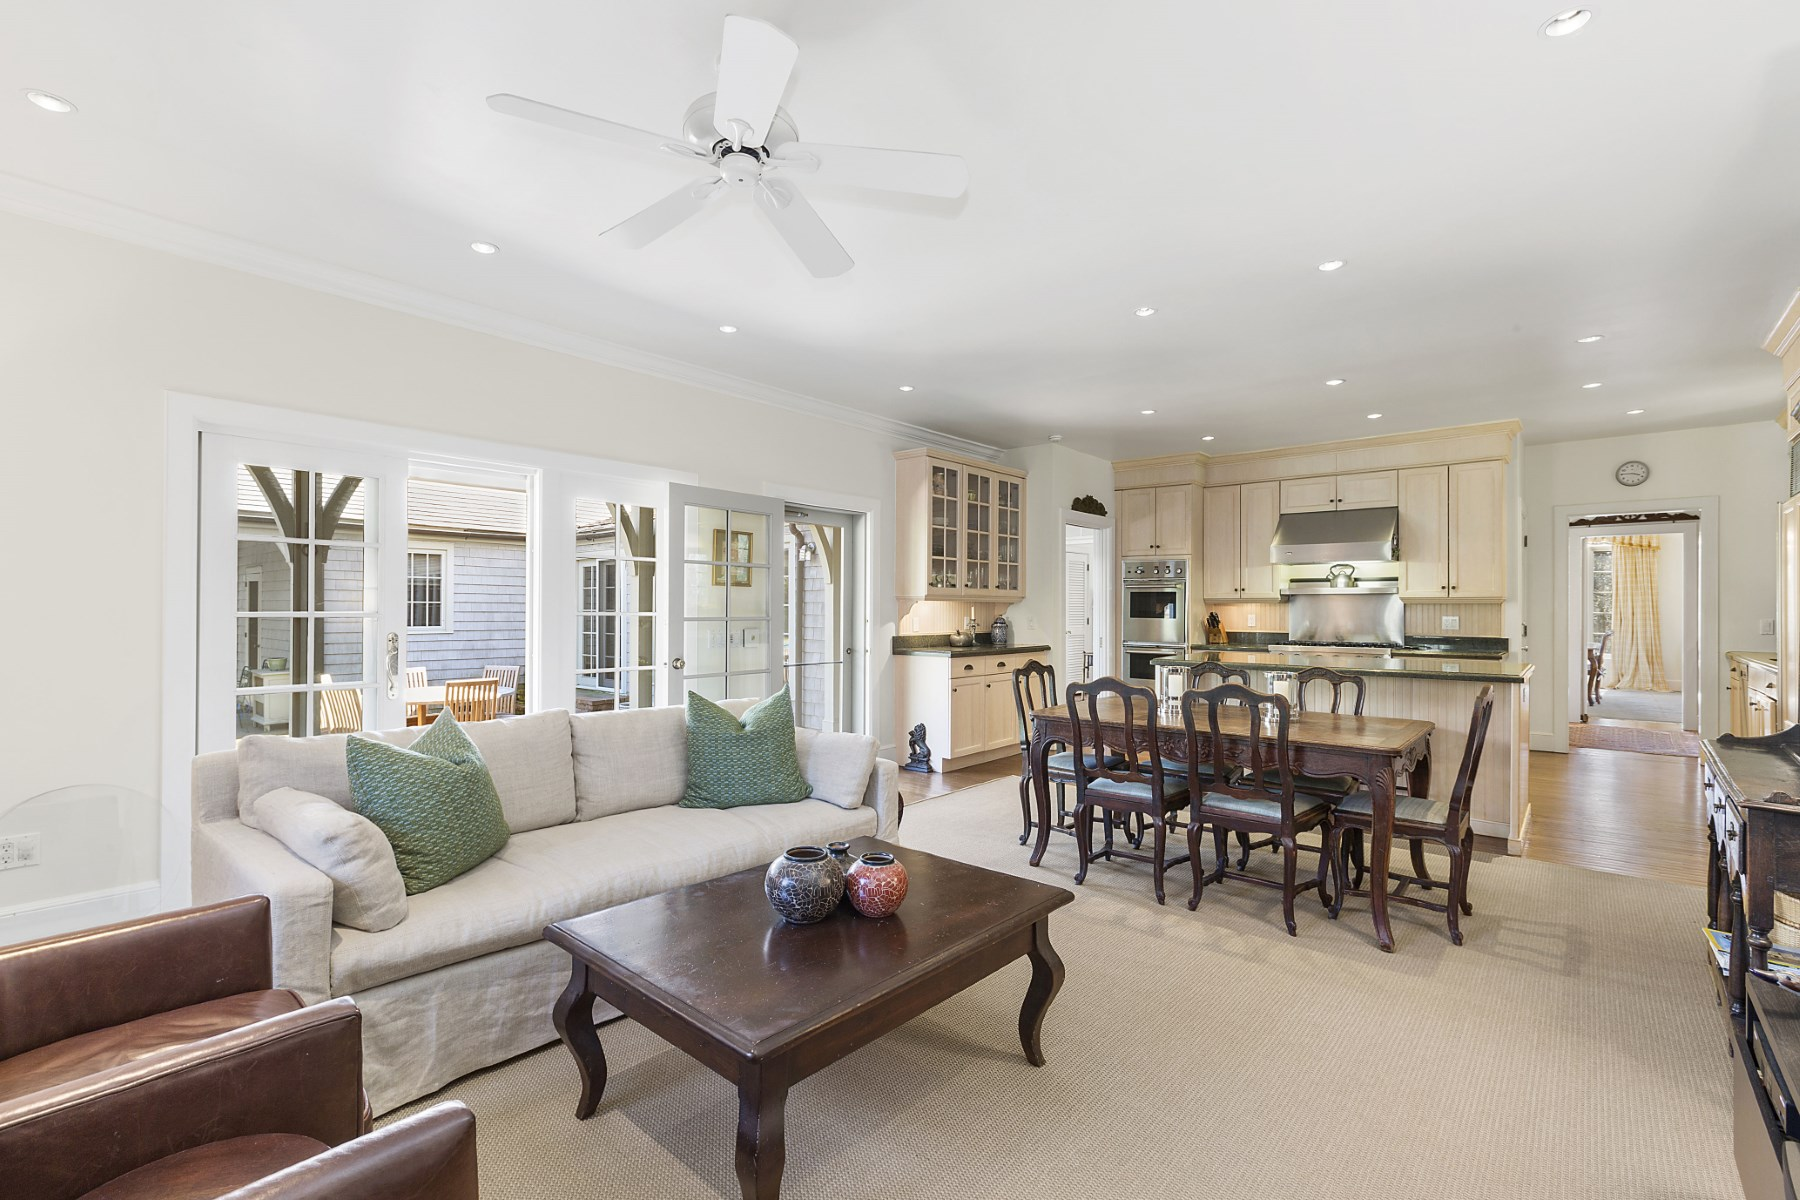 Single Family Home for Rent at Corner of Further Lane 3 Windmill Lane East Hampton, New York 11937 United States